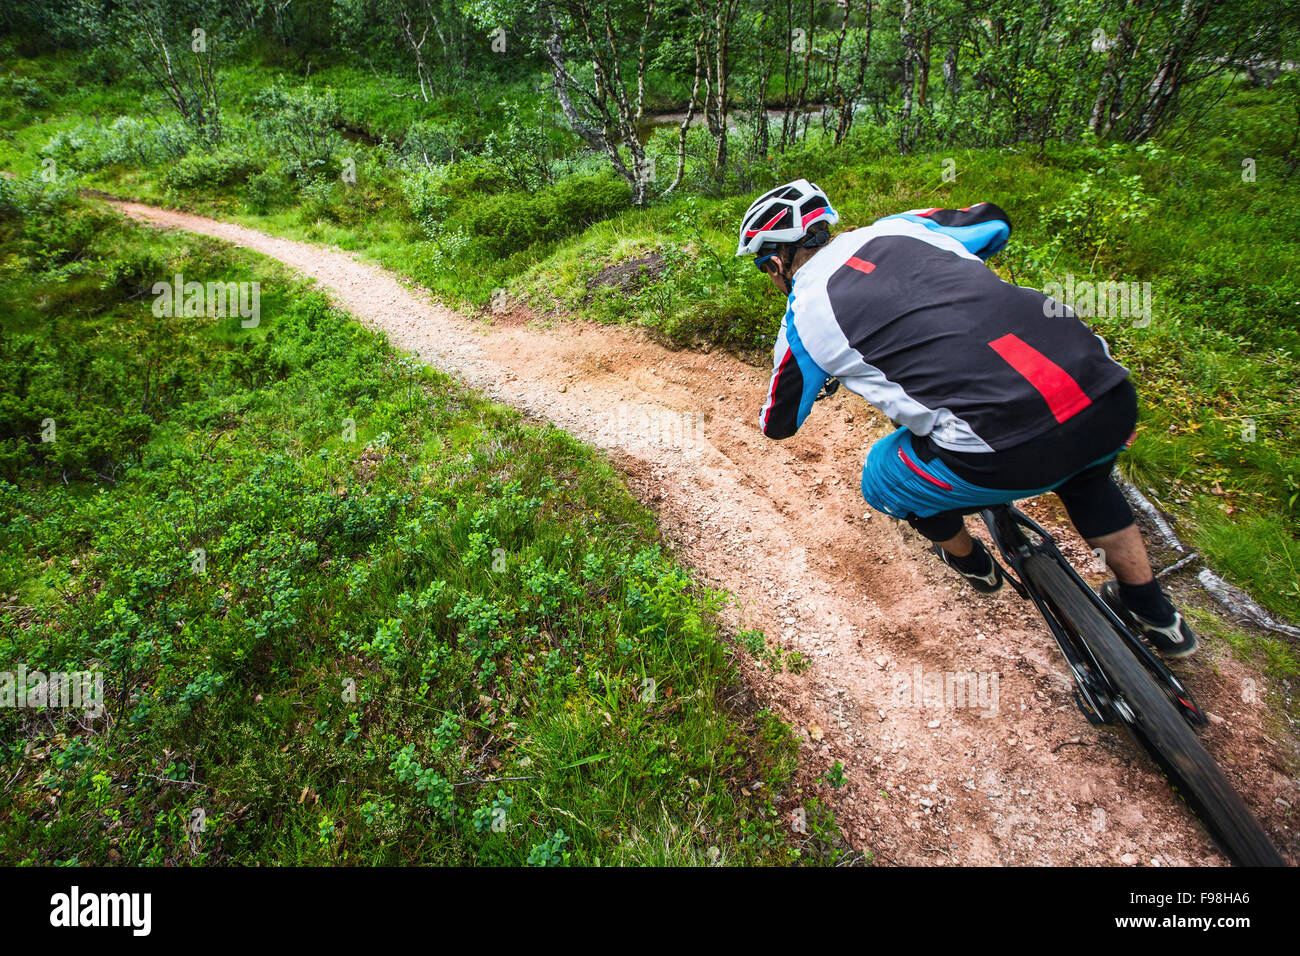 Mountain biker in a fast paced corner in Valadalen, Sweden. - Stock Image